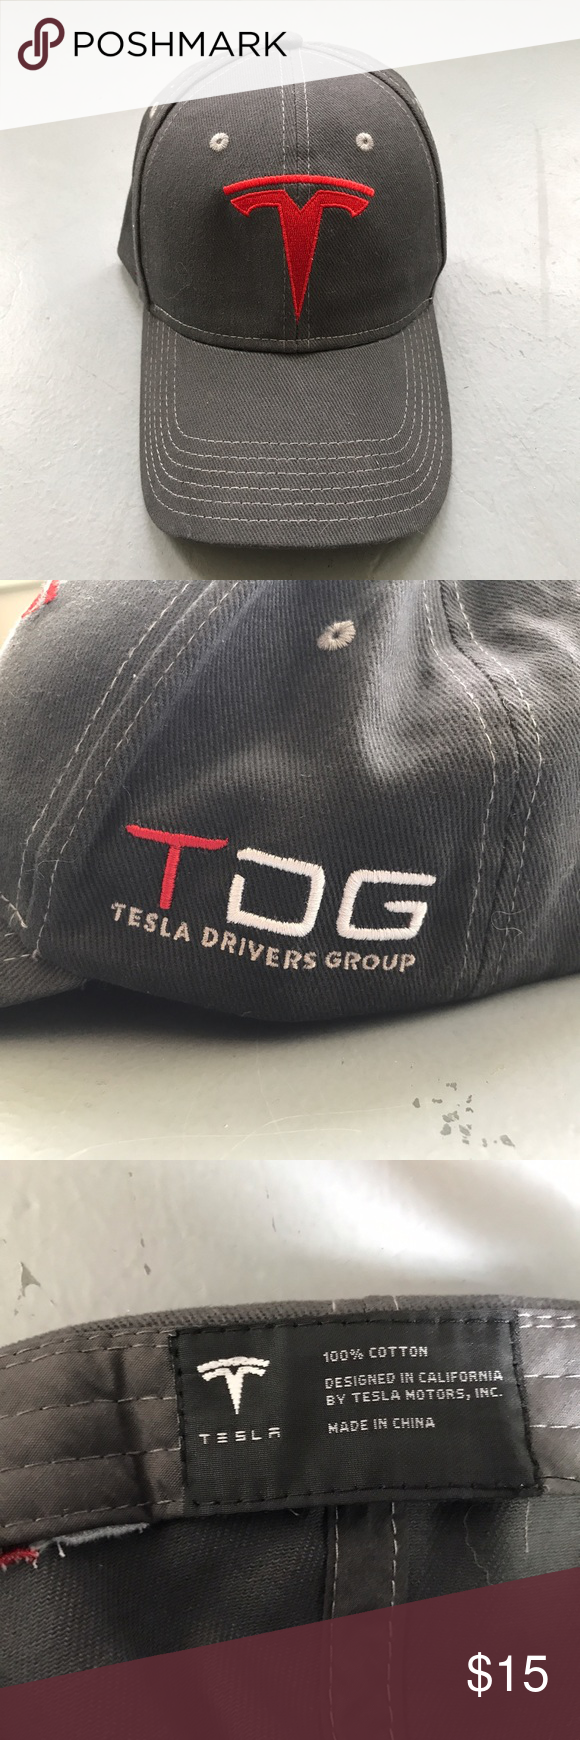 dc3afacaed2 Tesla Drivers Group Hat Tesla Motors Official Tesla Drivers Group baseball  cap. Accessories Hats